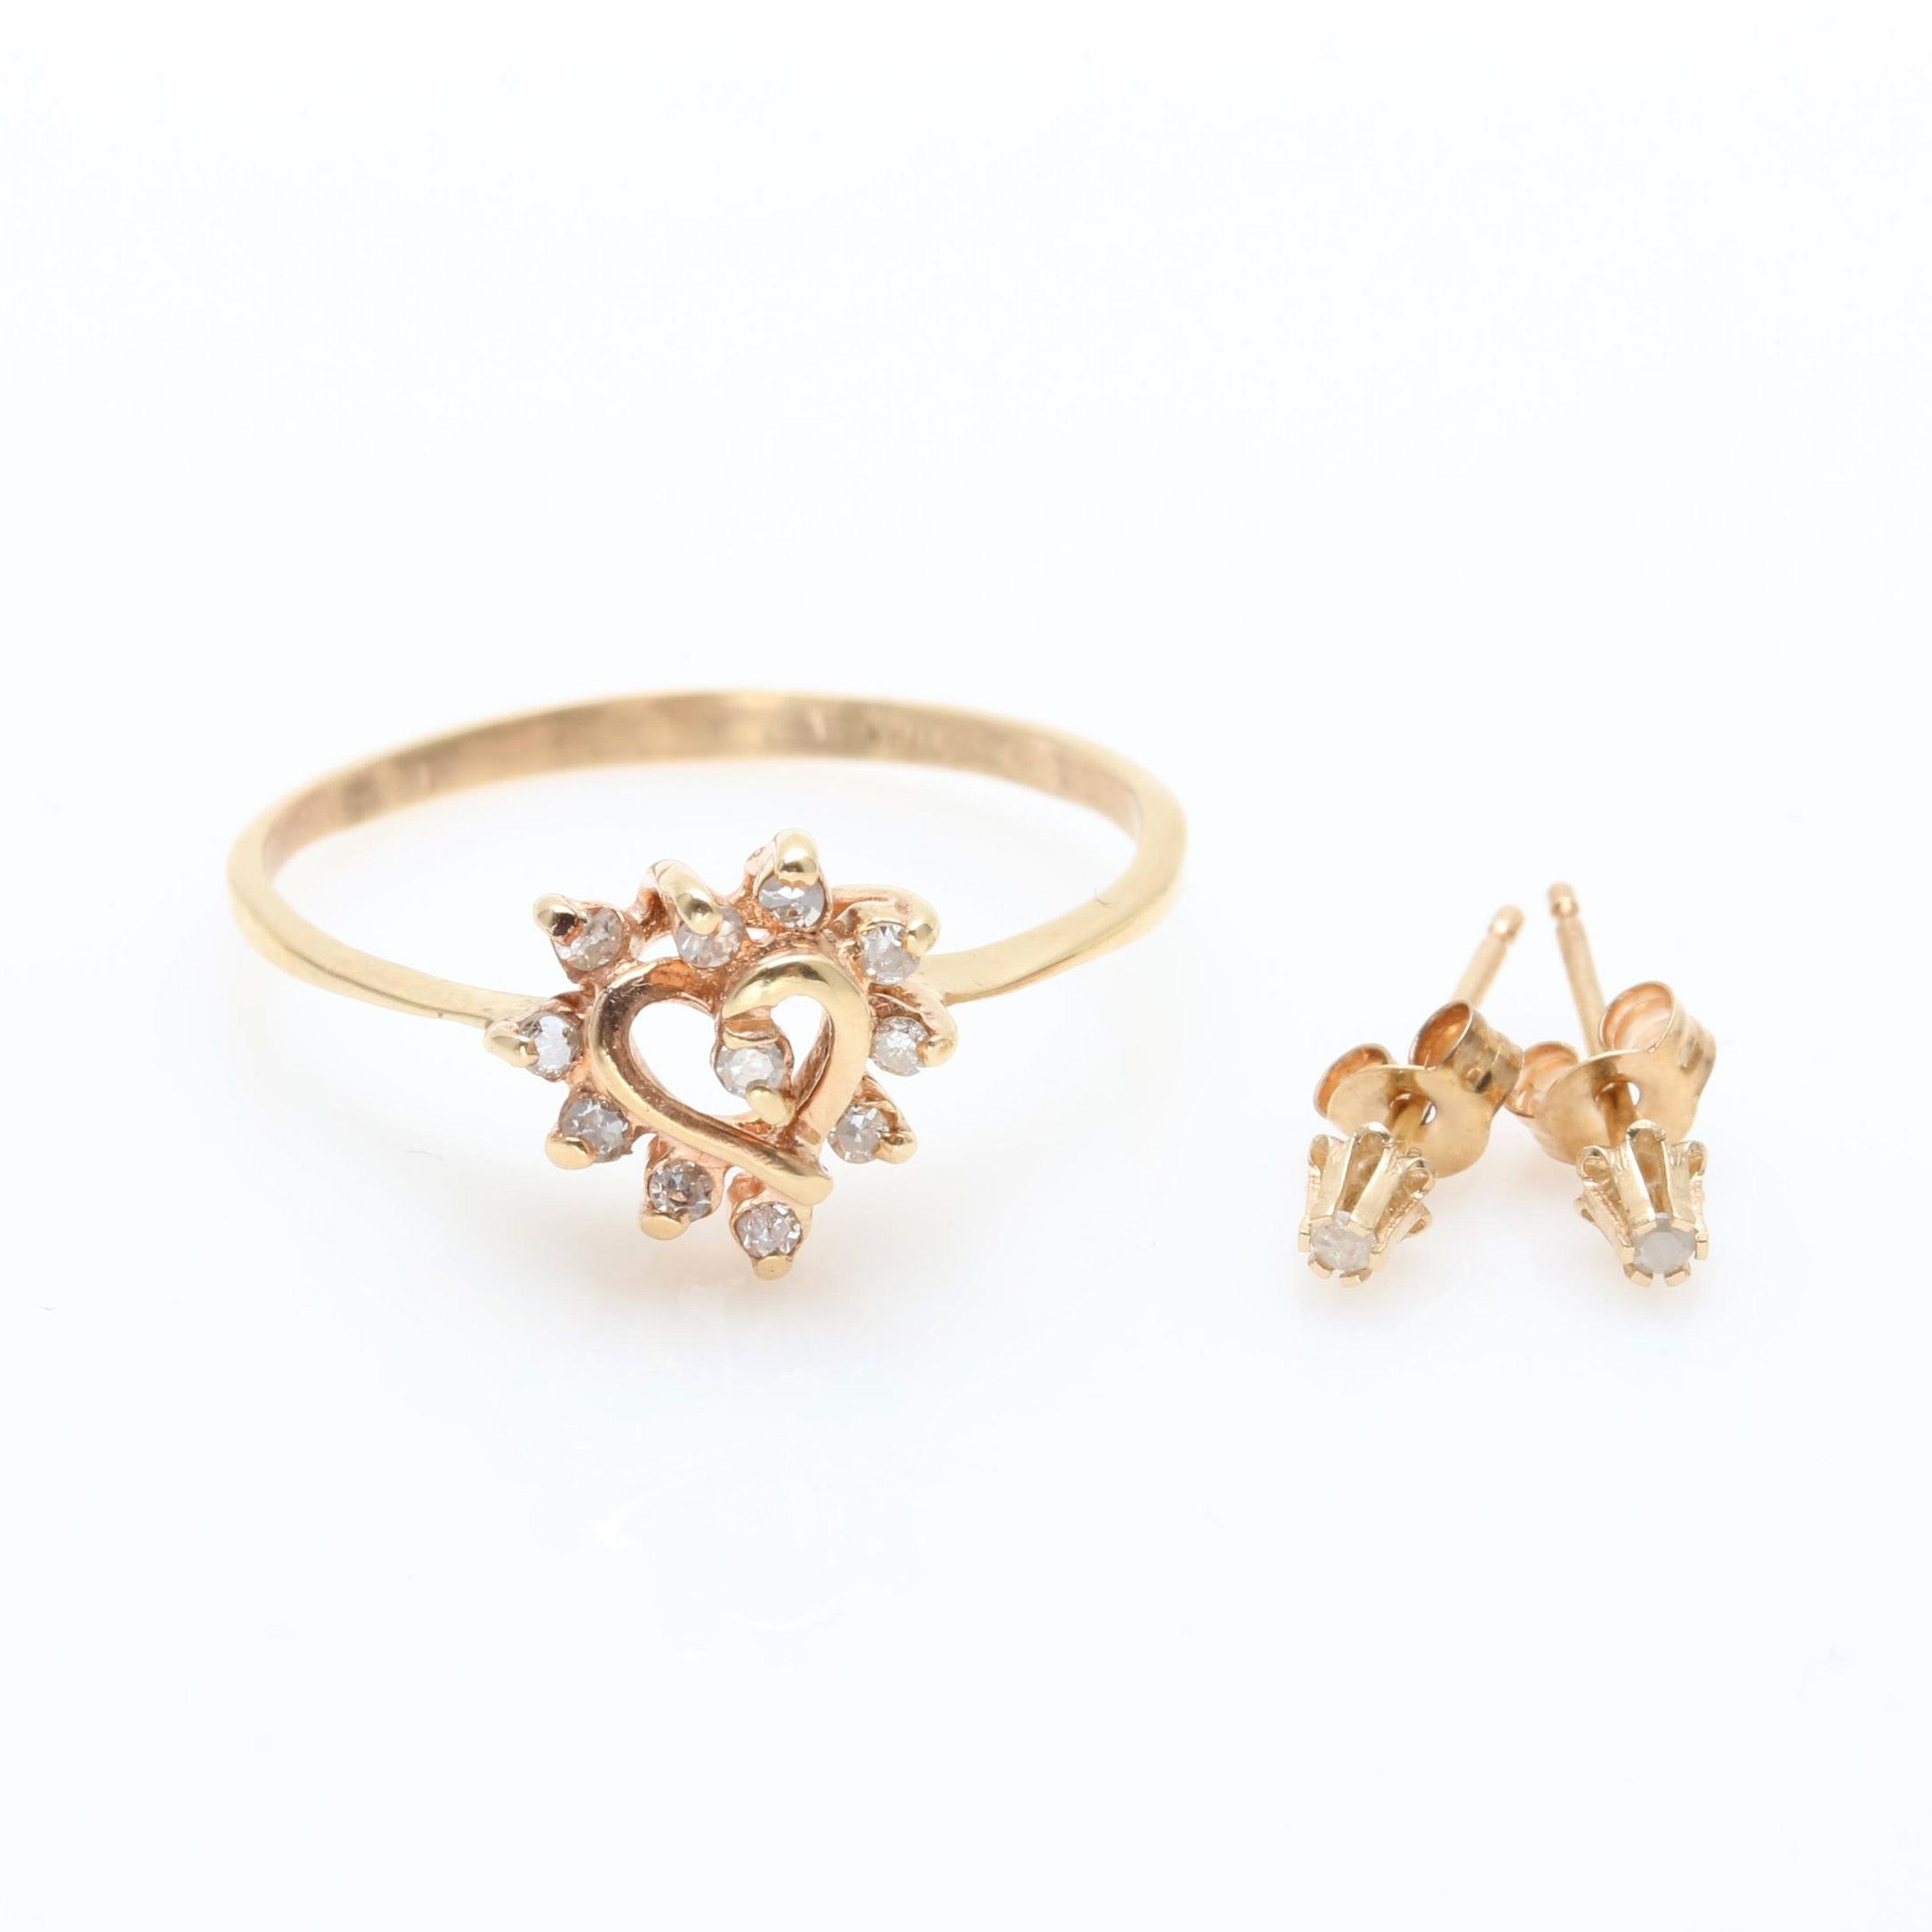 14K Yellow Gold Diamond Heart Ring and Stud Earrings